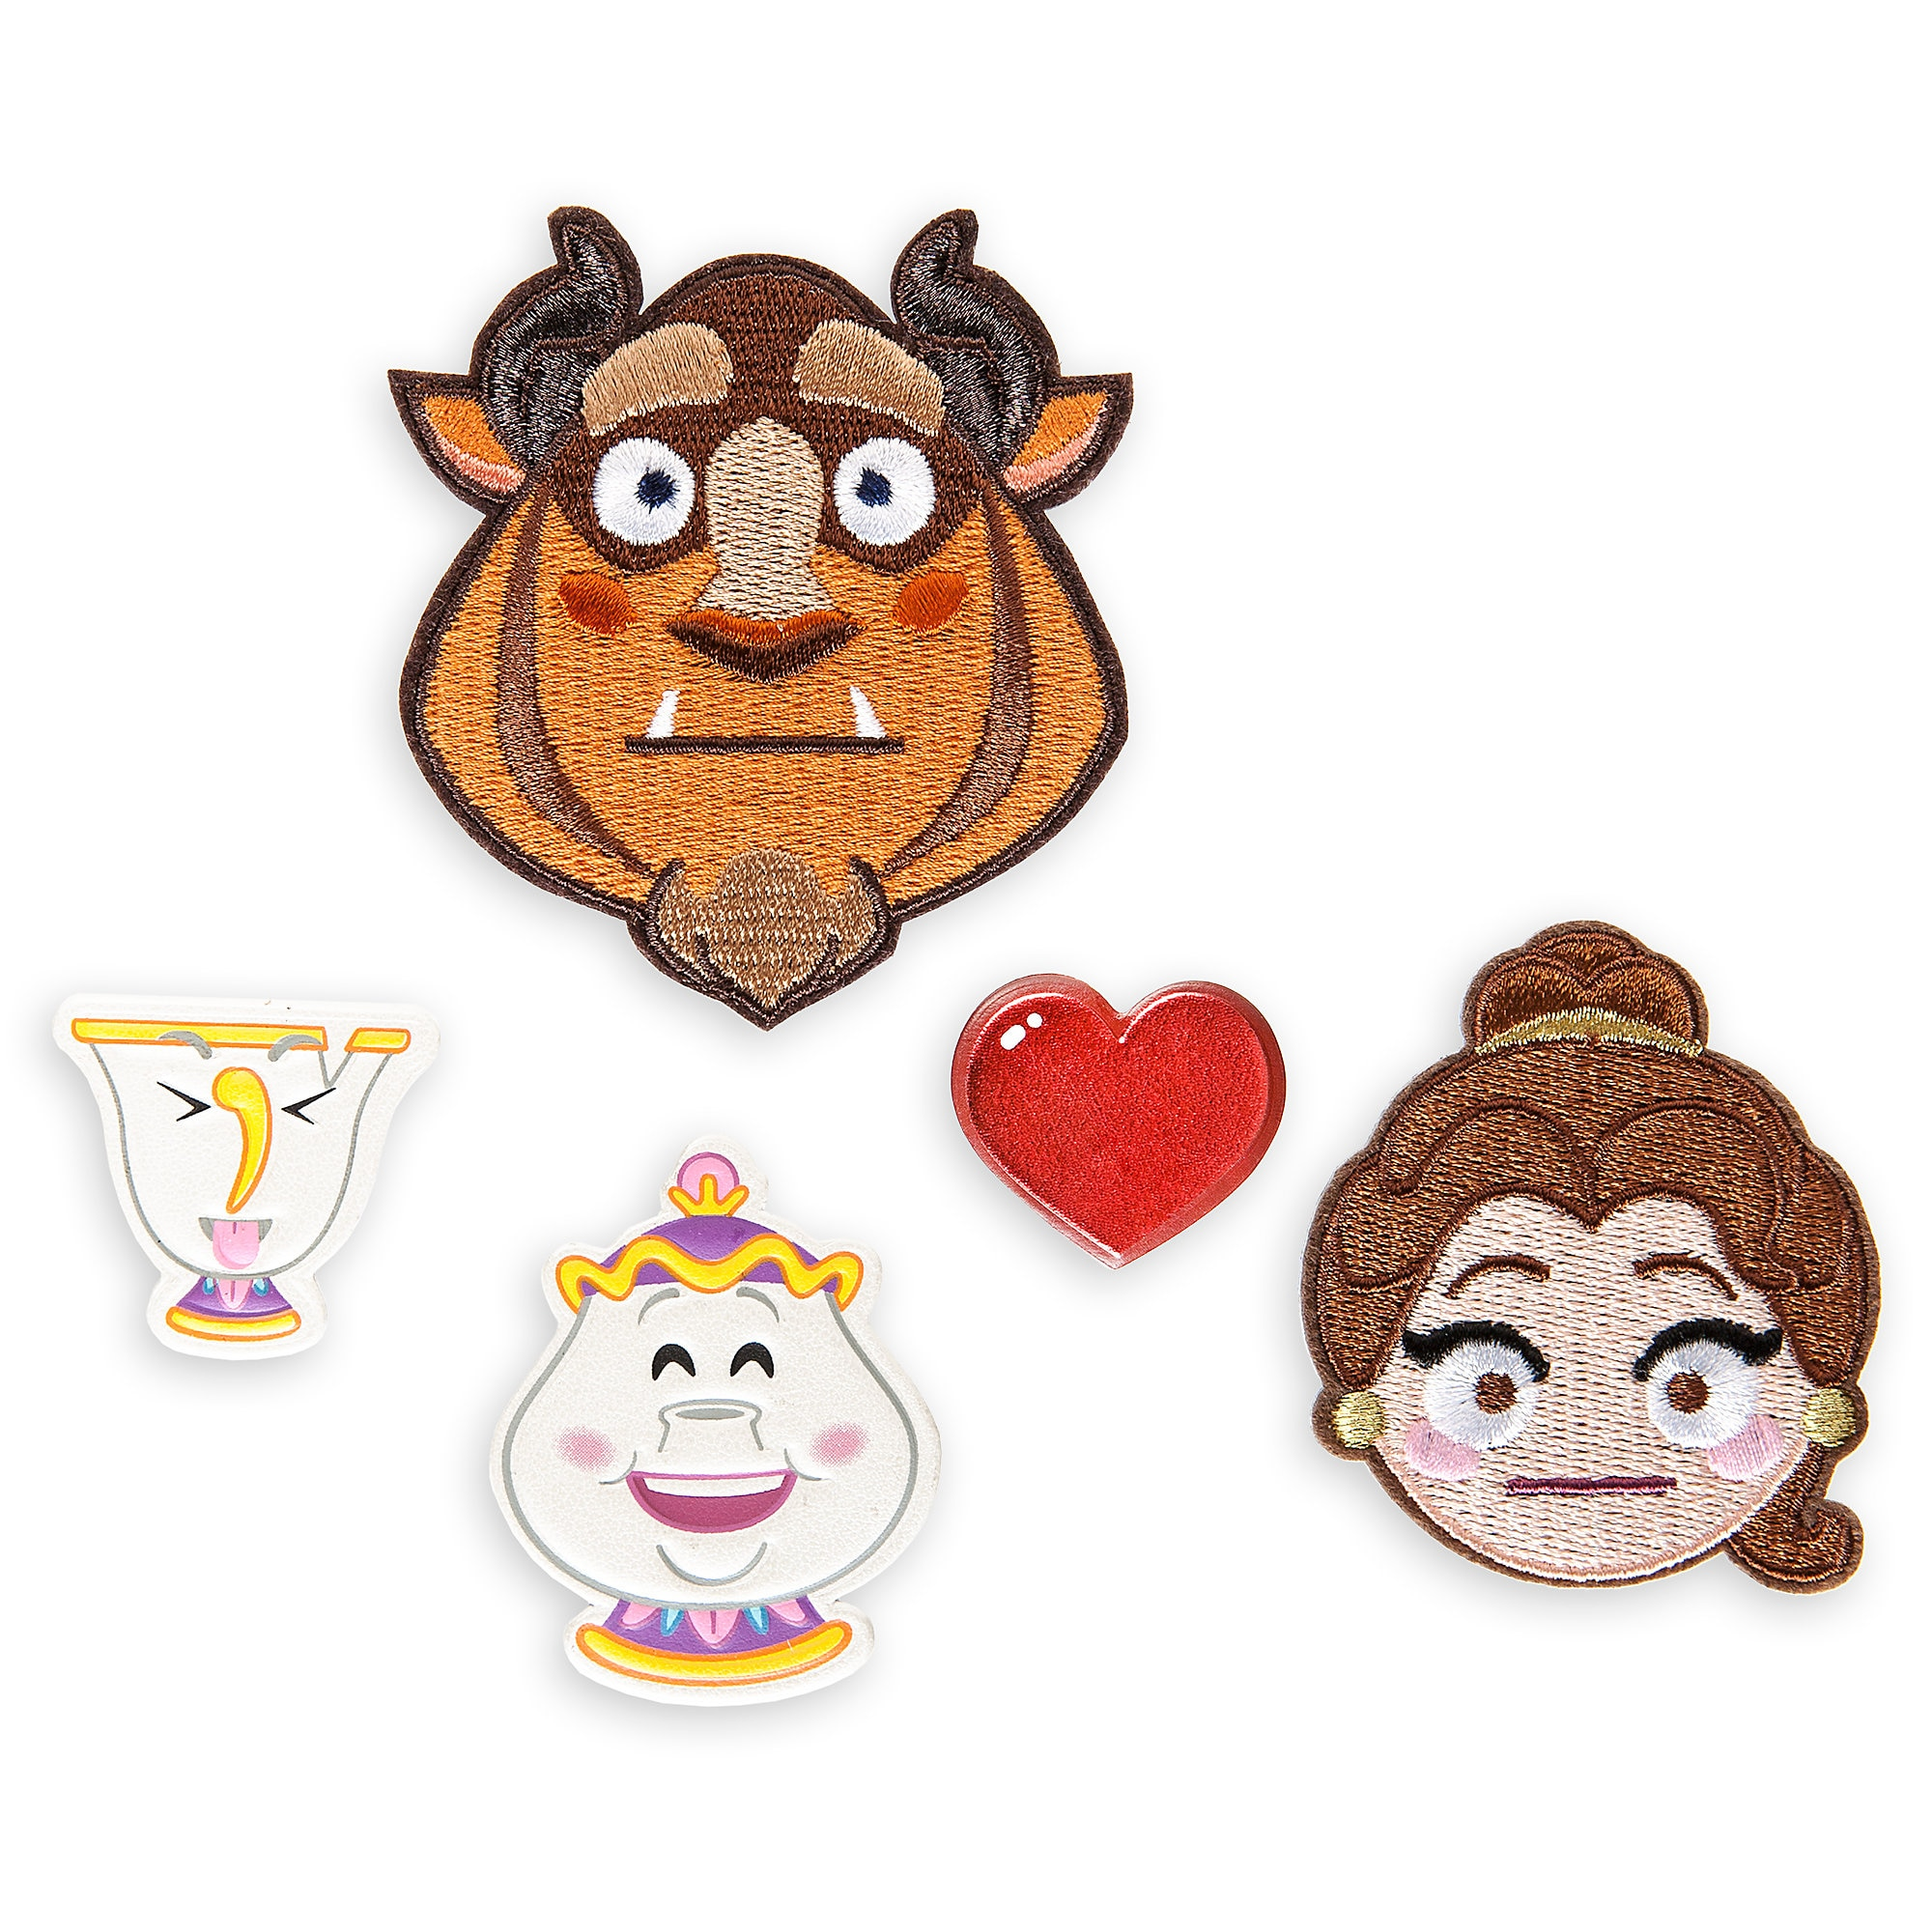 Beauty and the Beast Emoji Sticker Patch Set